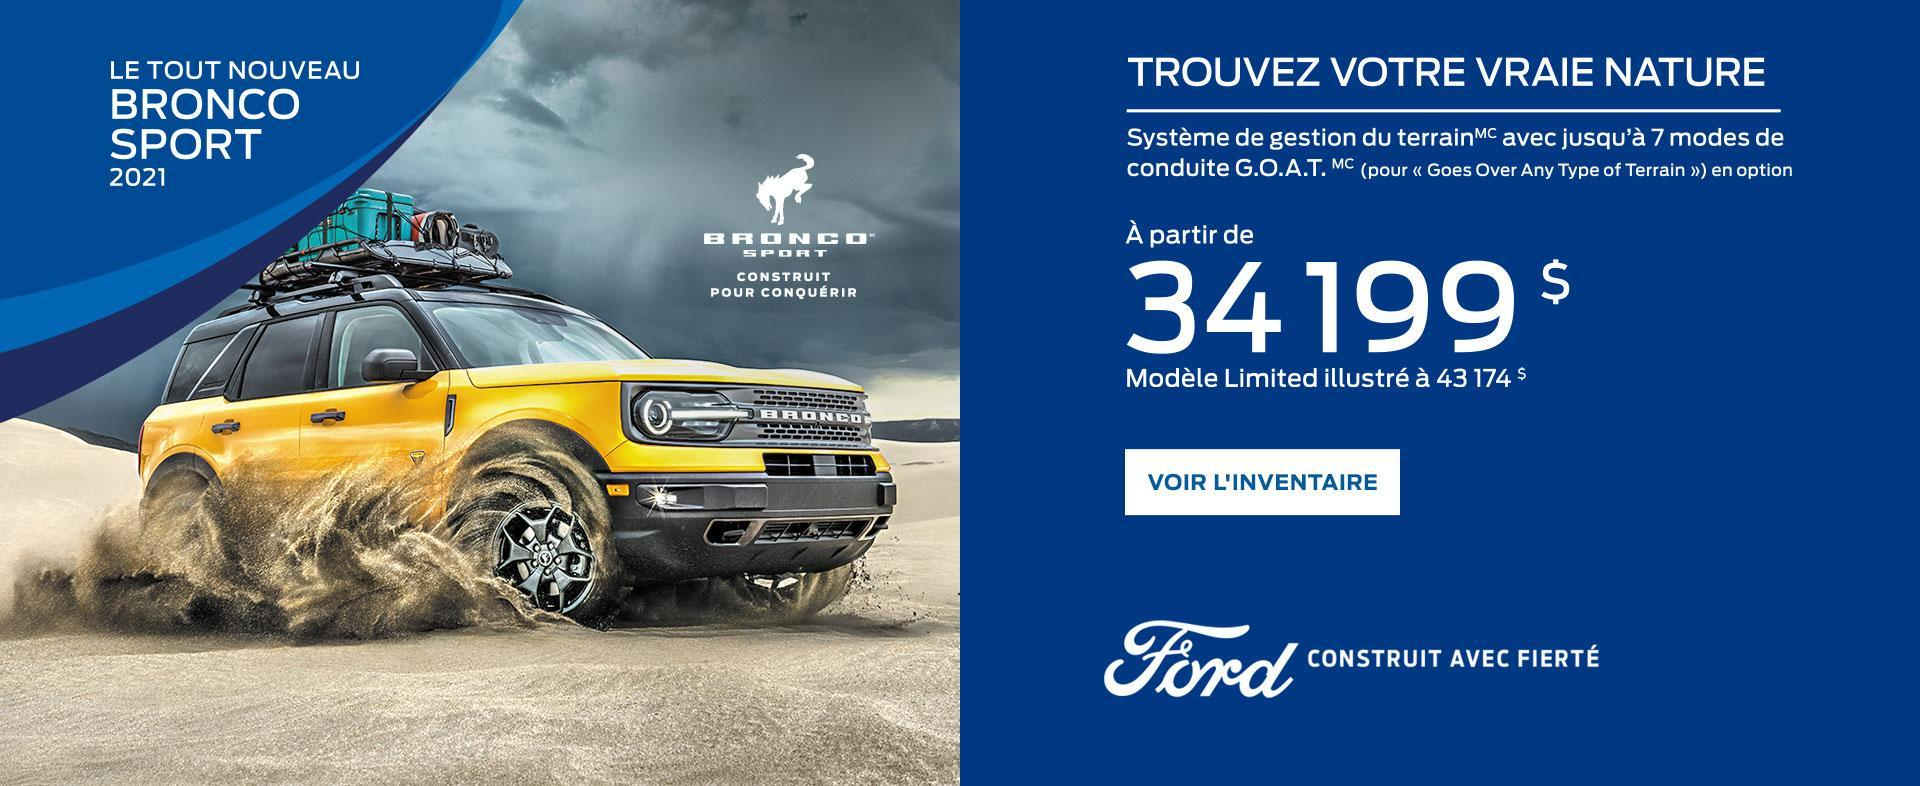 2021 Bronco Sport | Ford of Canada